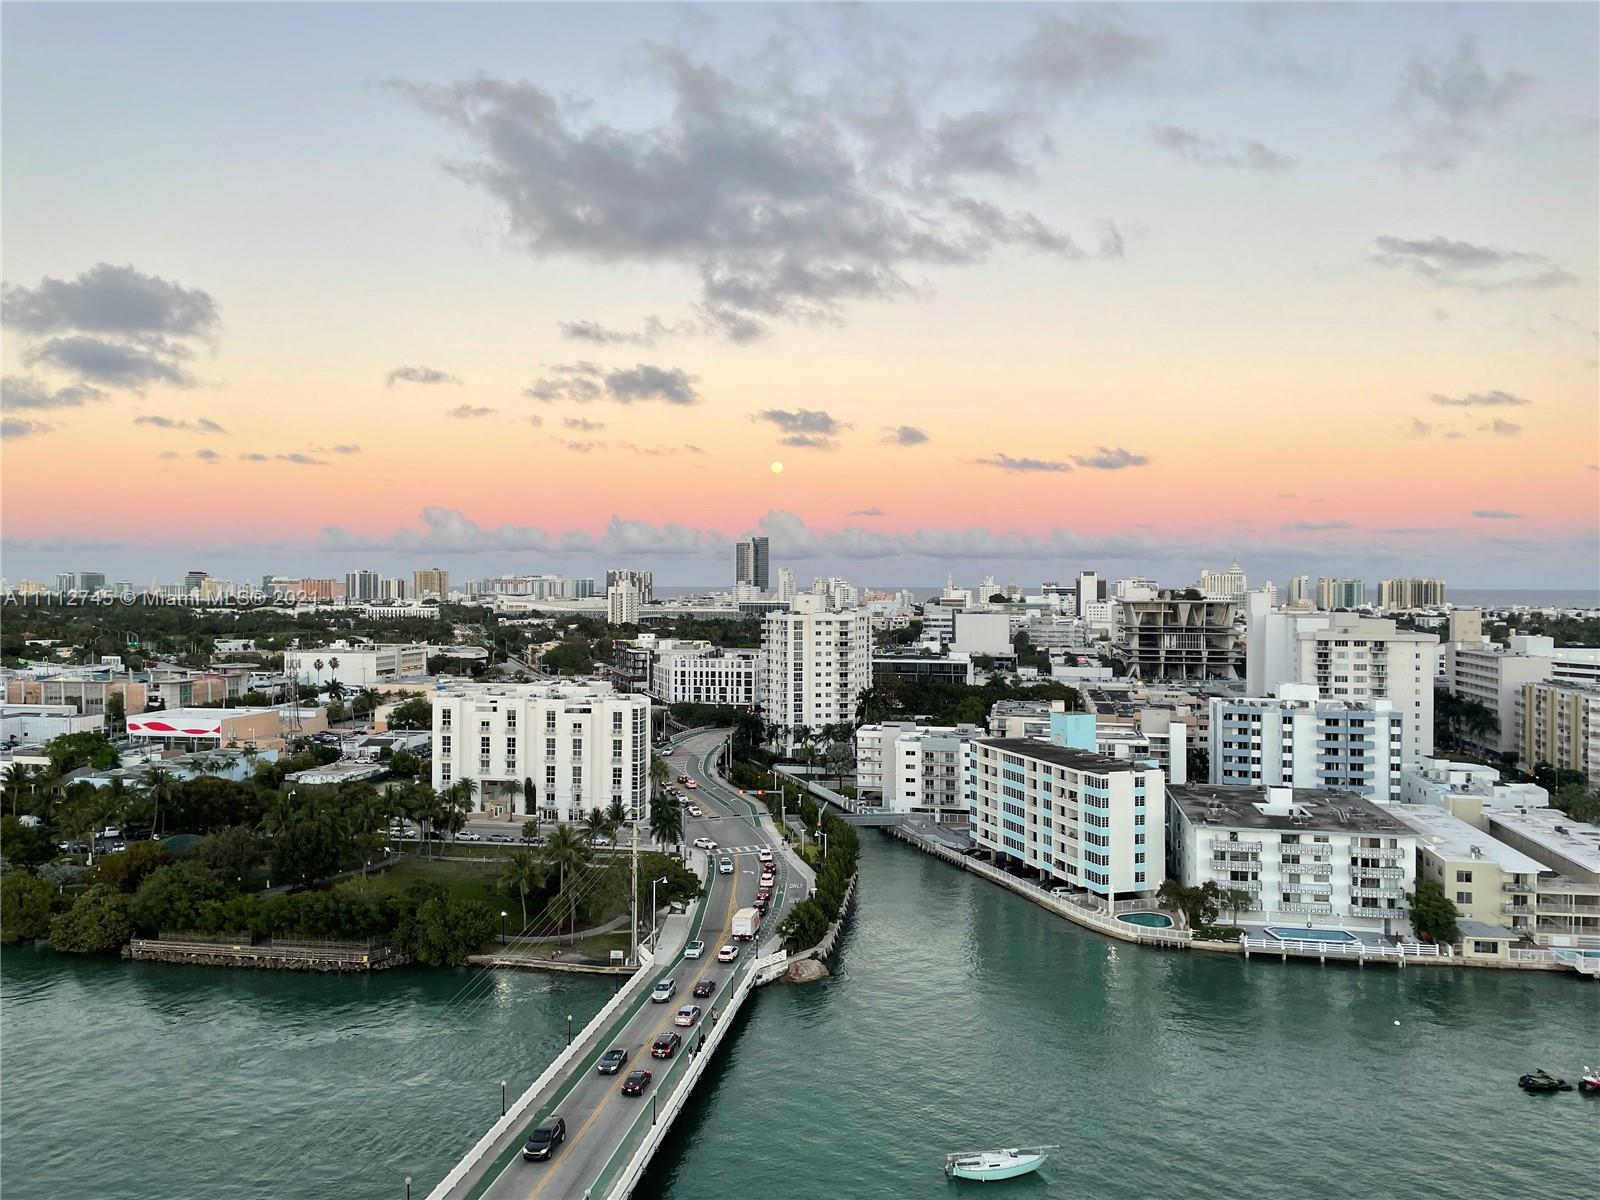 Step outside to watch the sunrise and sunset on this breathtaking wrap-around balcony with views of